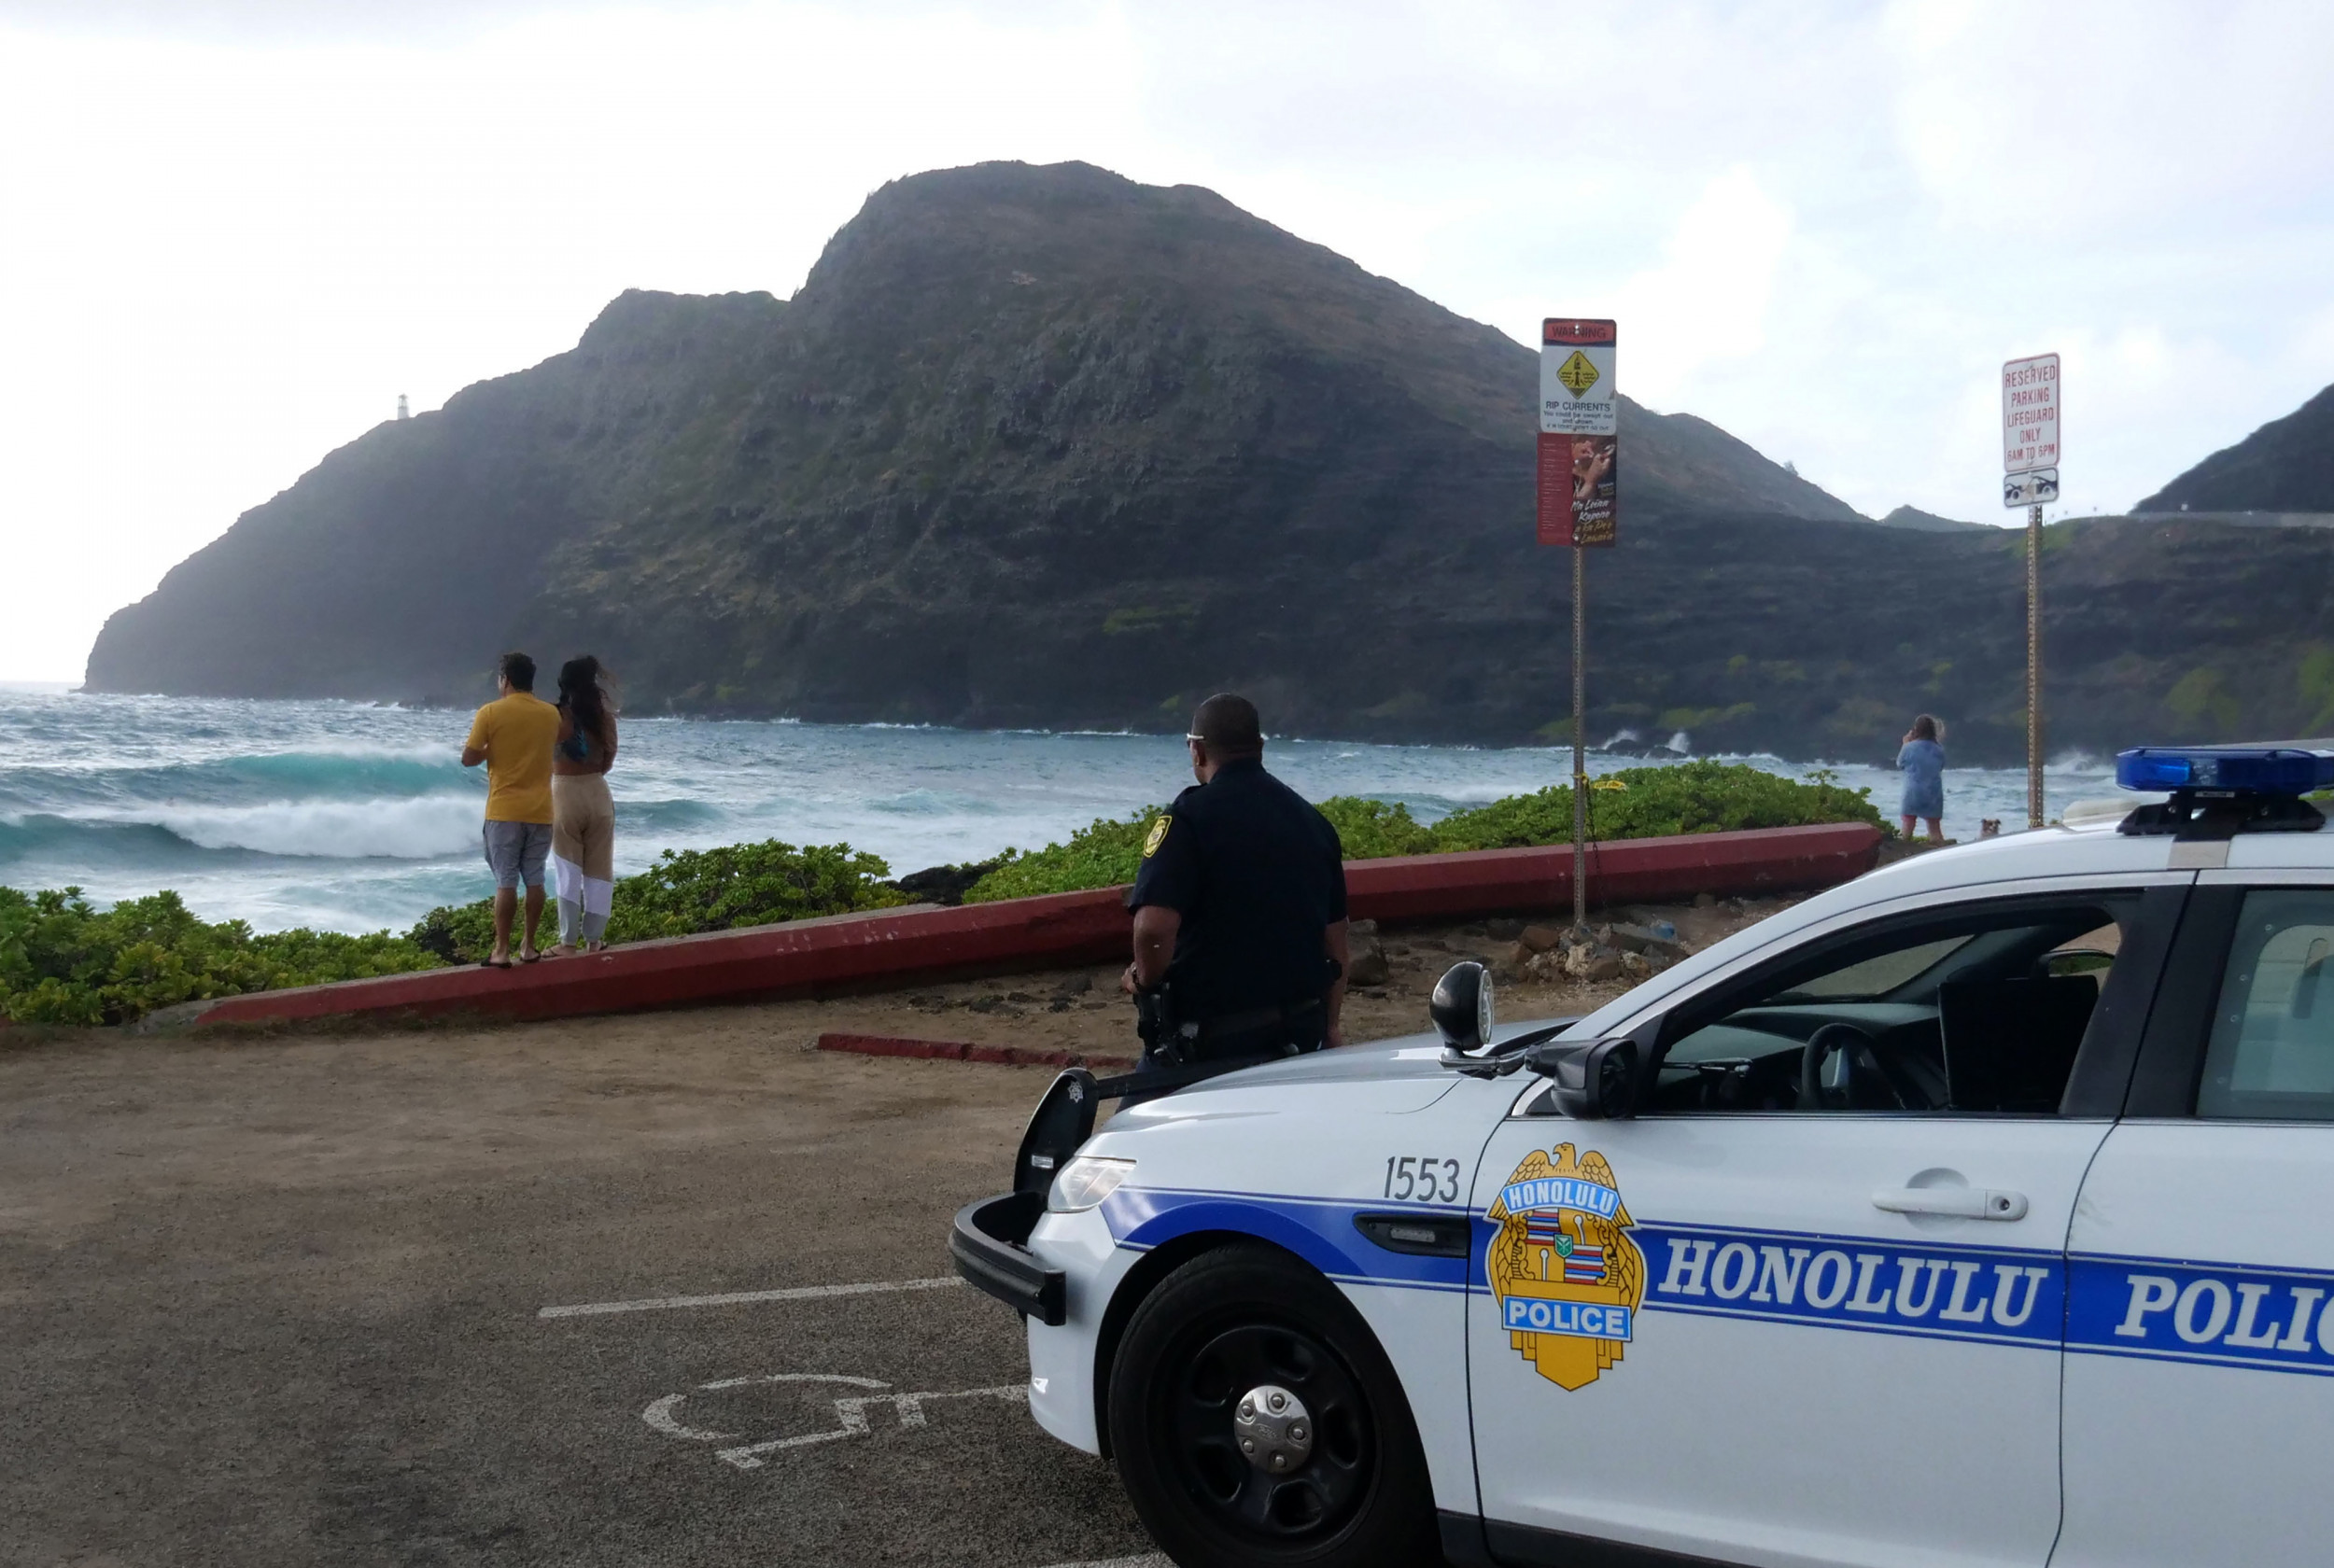 Homeless Man in Burns Unit After Being Set on Fire in Hawaii